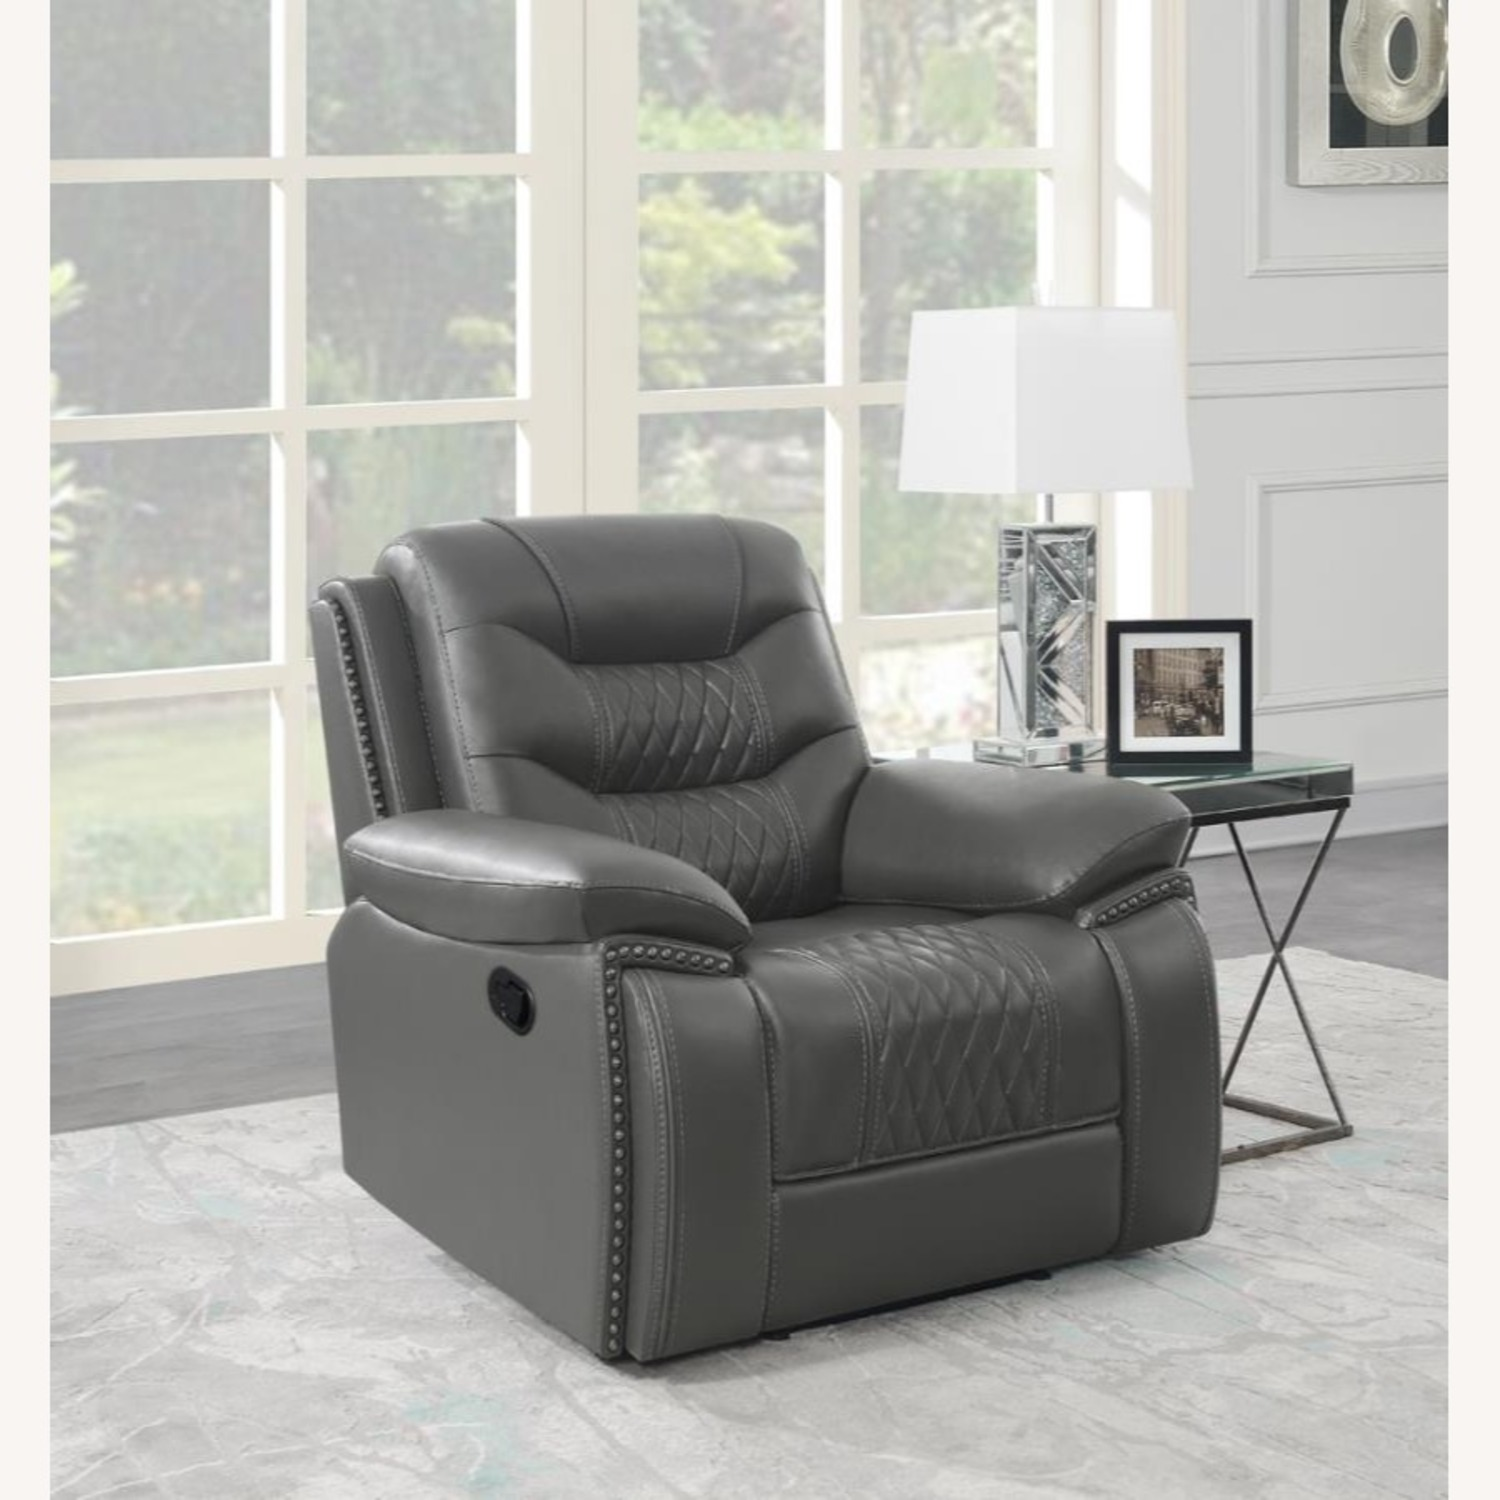 Recliner In Charcoal Performance Leatherette - image-6